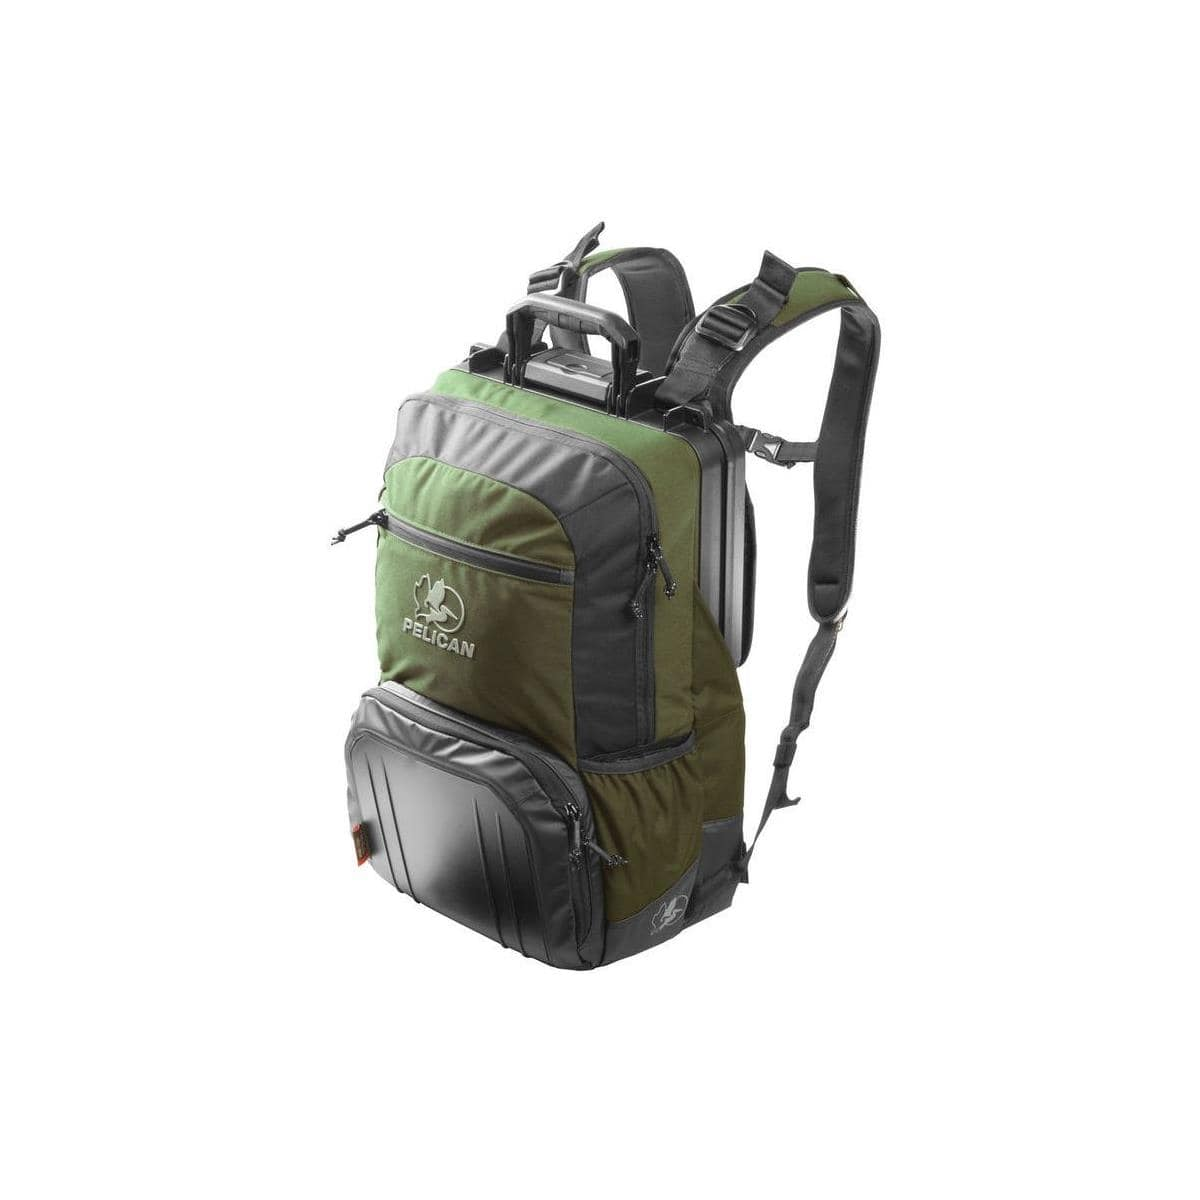 Pelican S140 Sport Elite Tablet Backpack (Green)  $30 + Free S/H